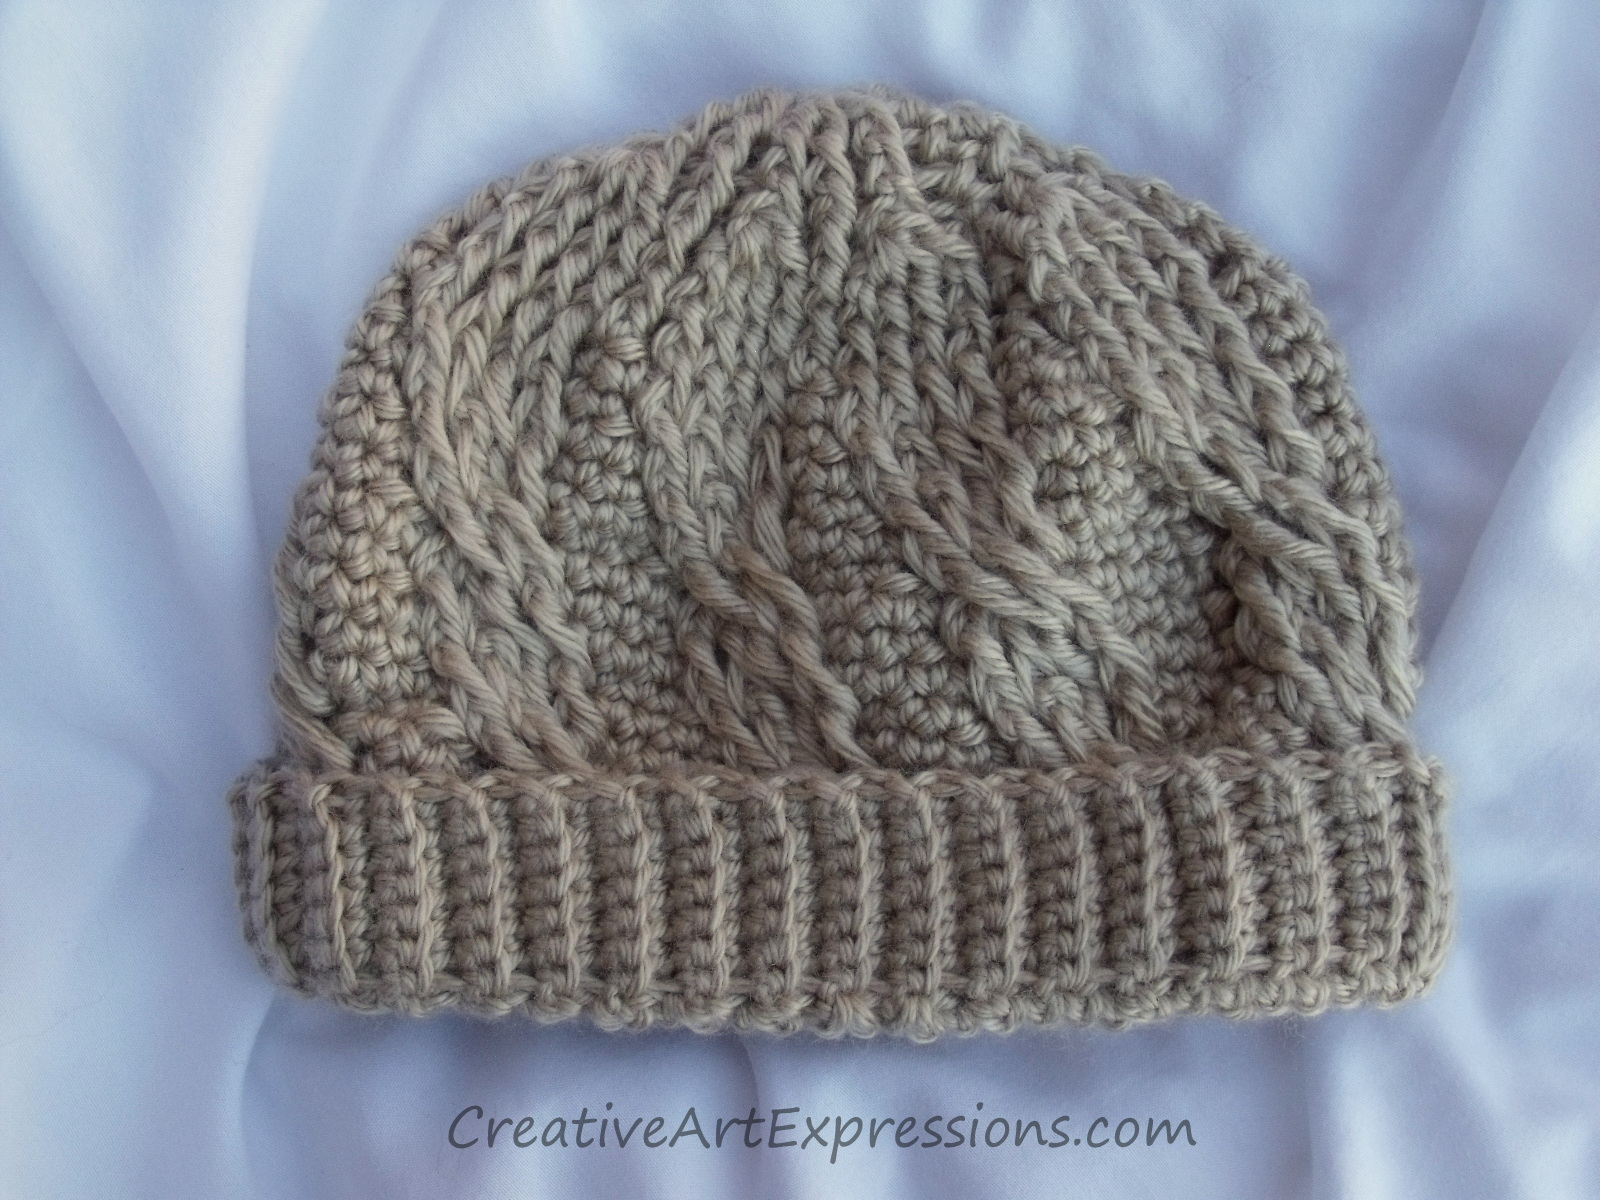 Crochet Cable Stitch : Hand Crocheted Cable Stitch Baby Beanie Creative Art Expressions